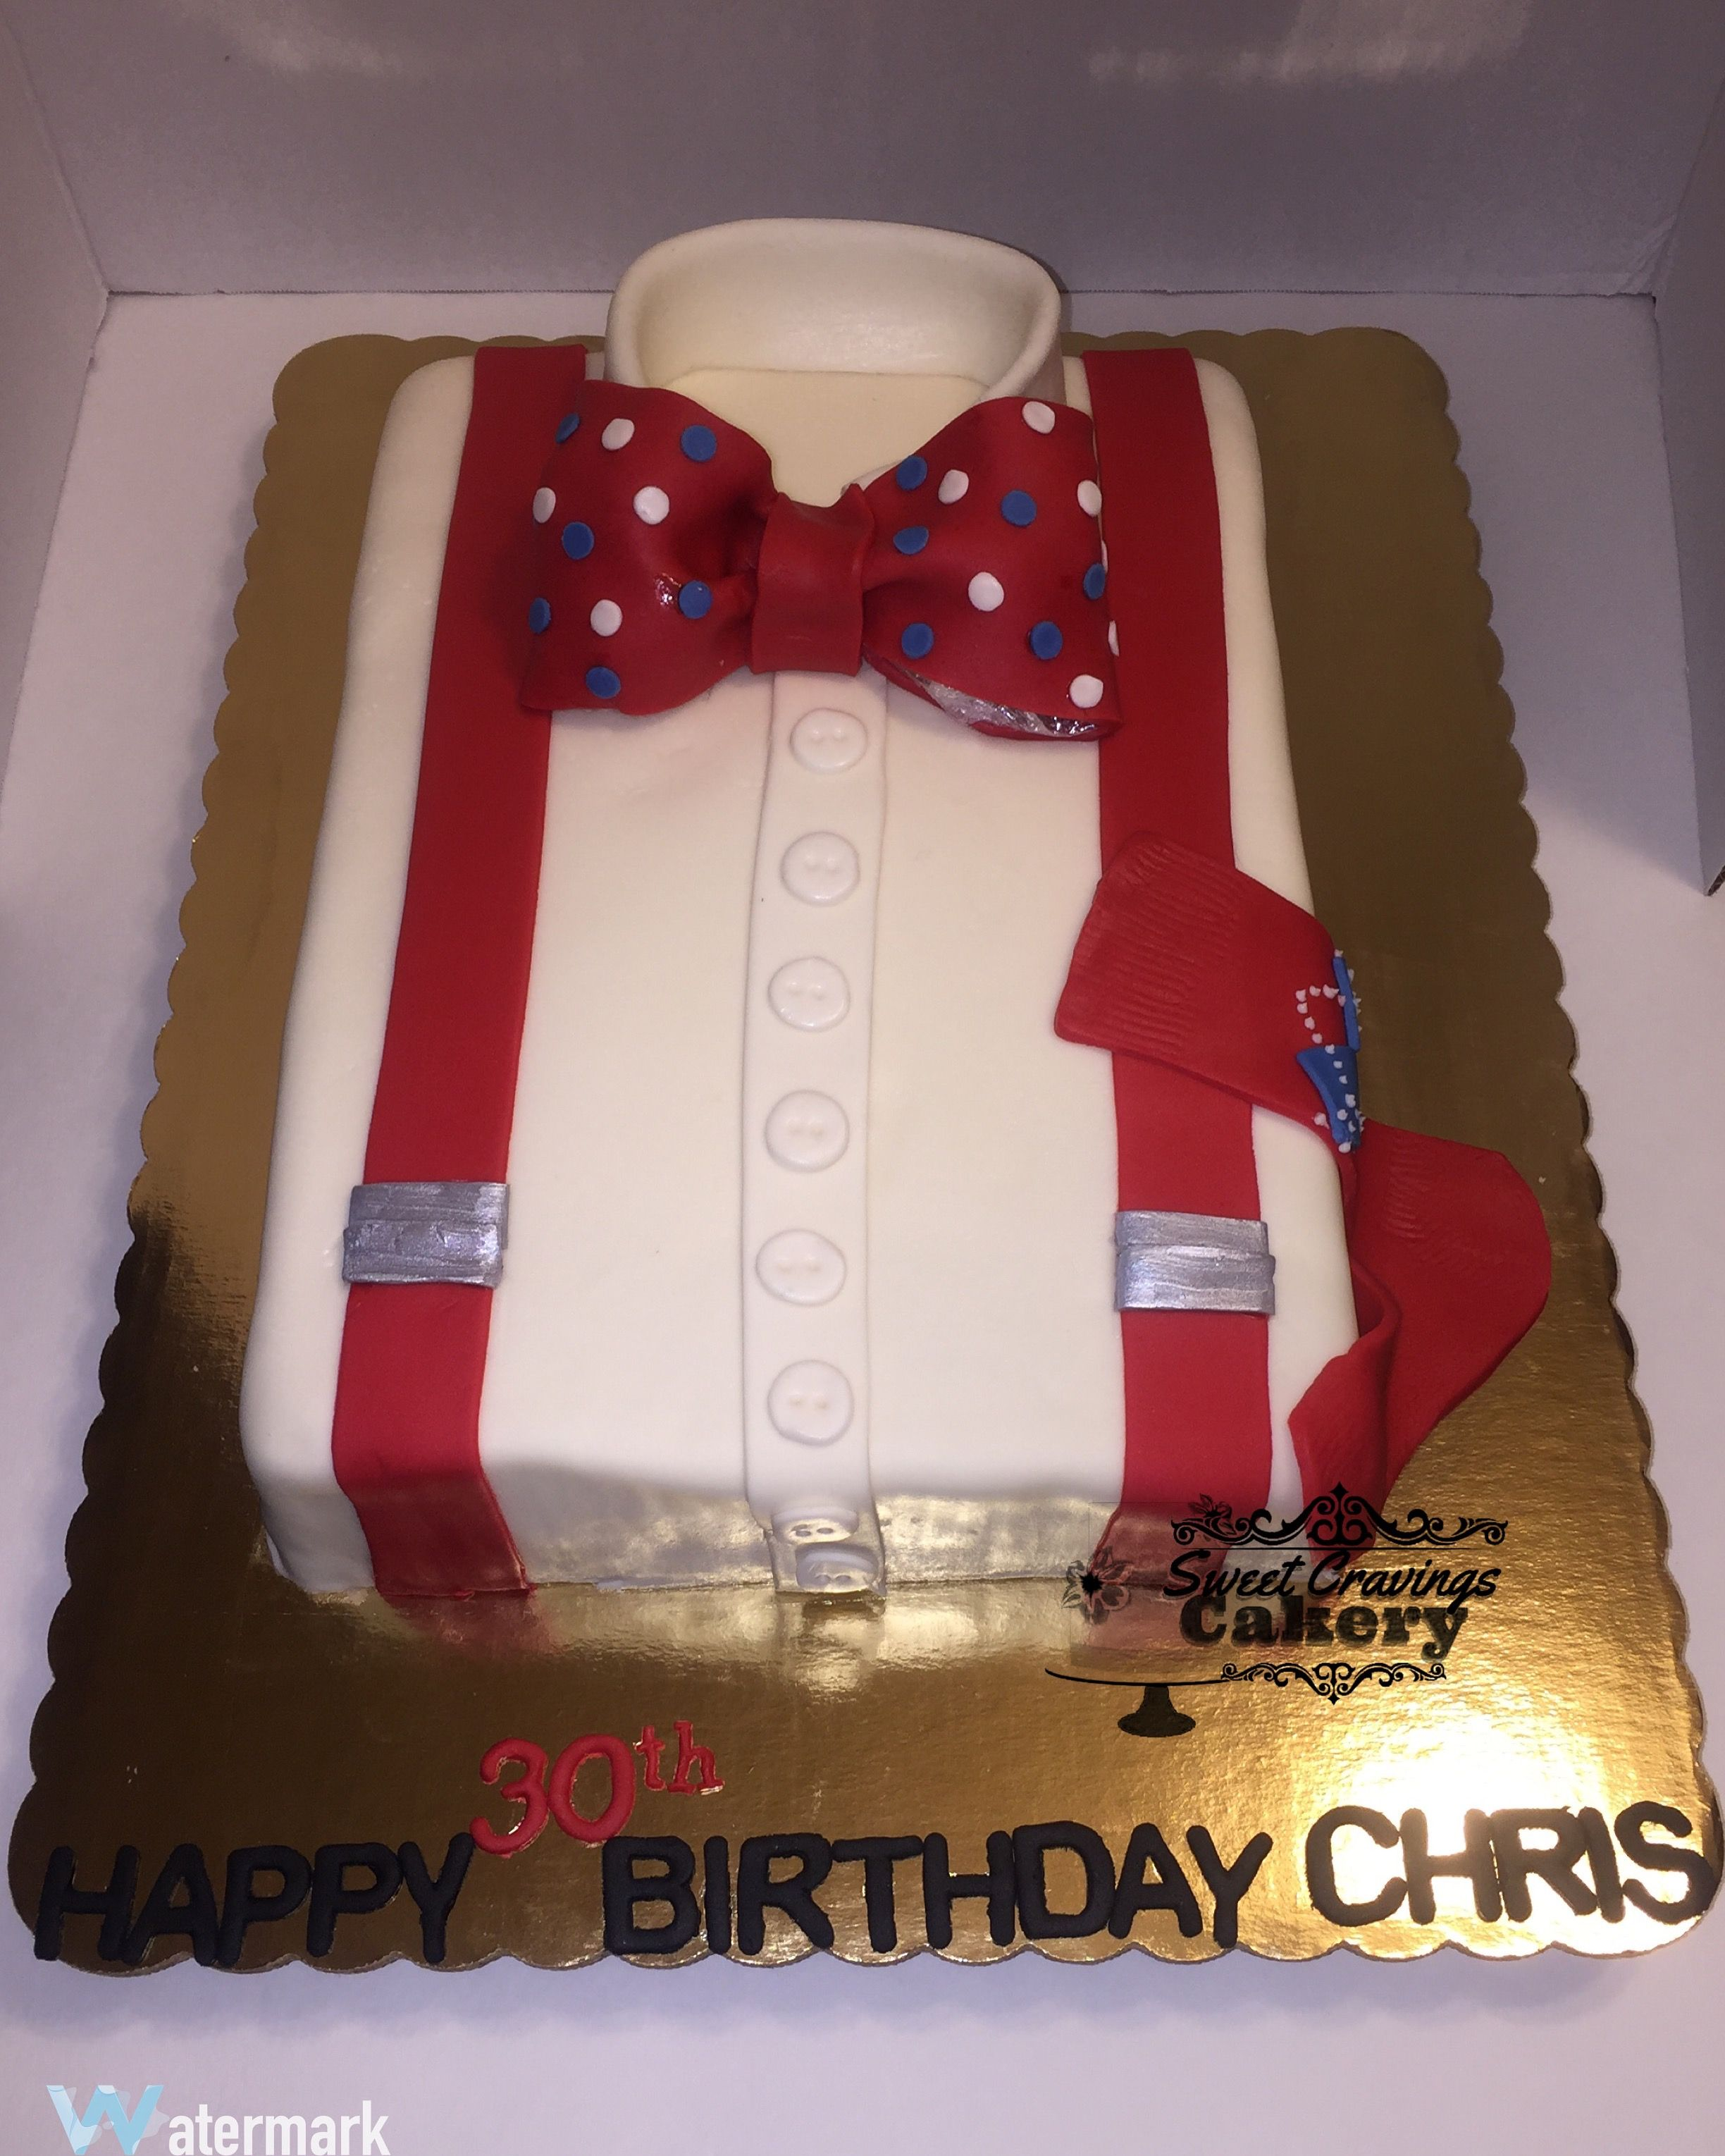 Shirt Cake Bow Tie Cake Classic Man Cake Sweet Cravings Cakery